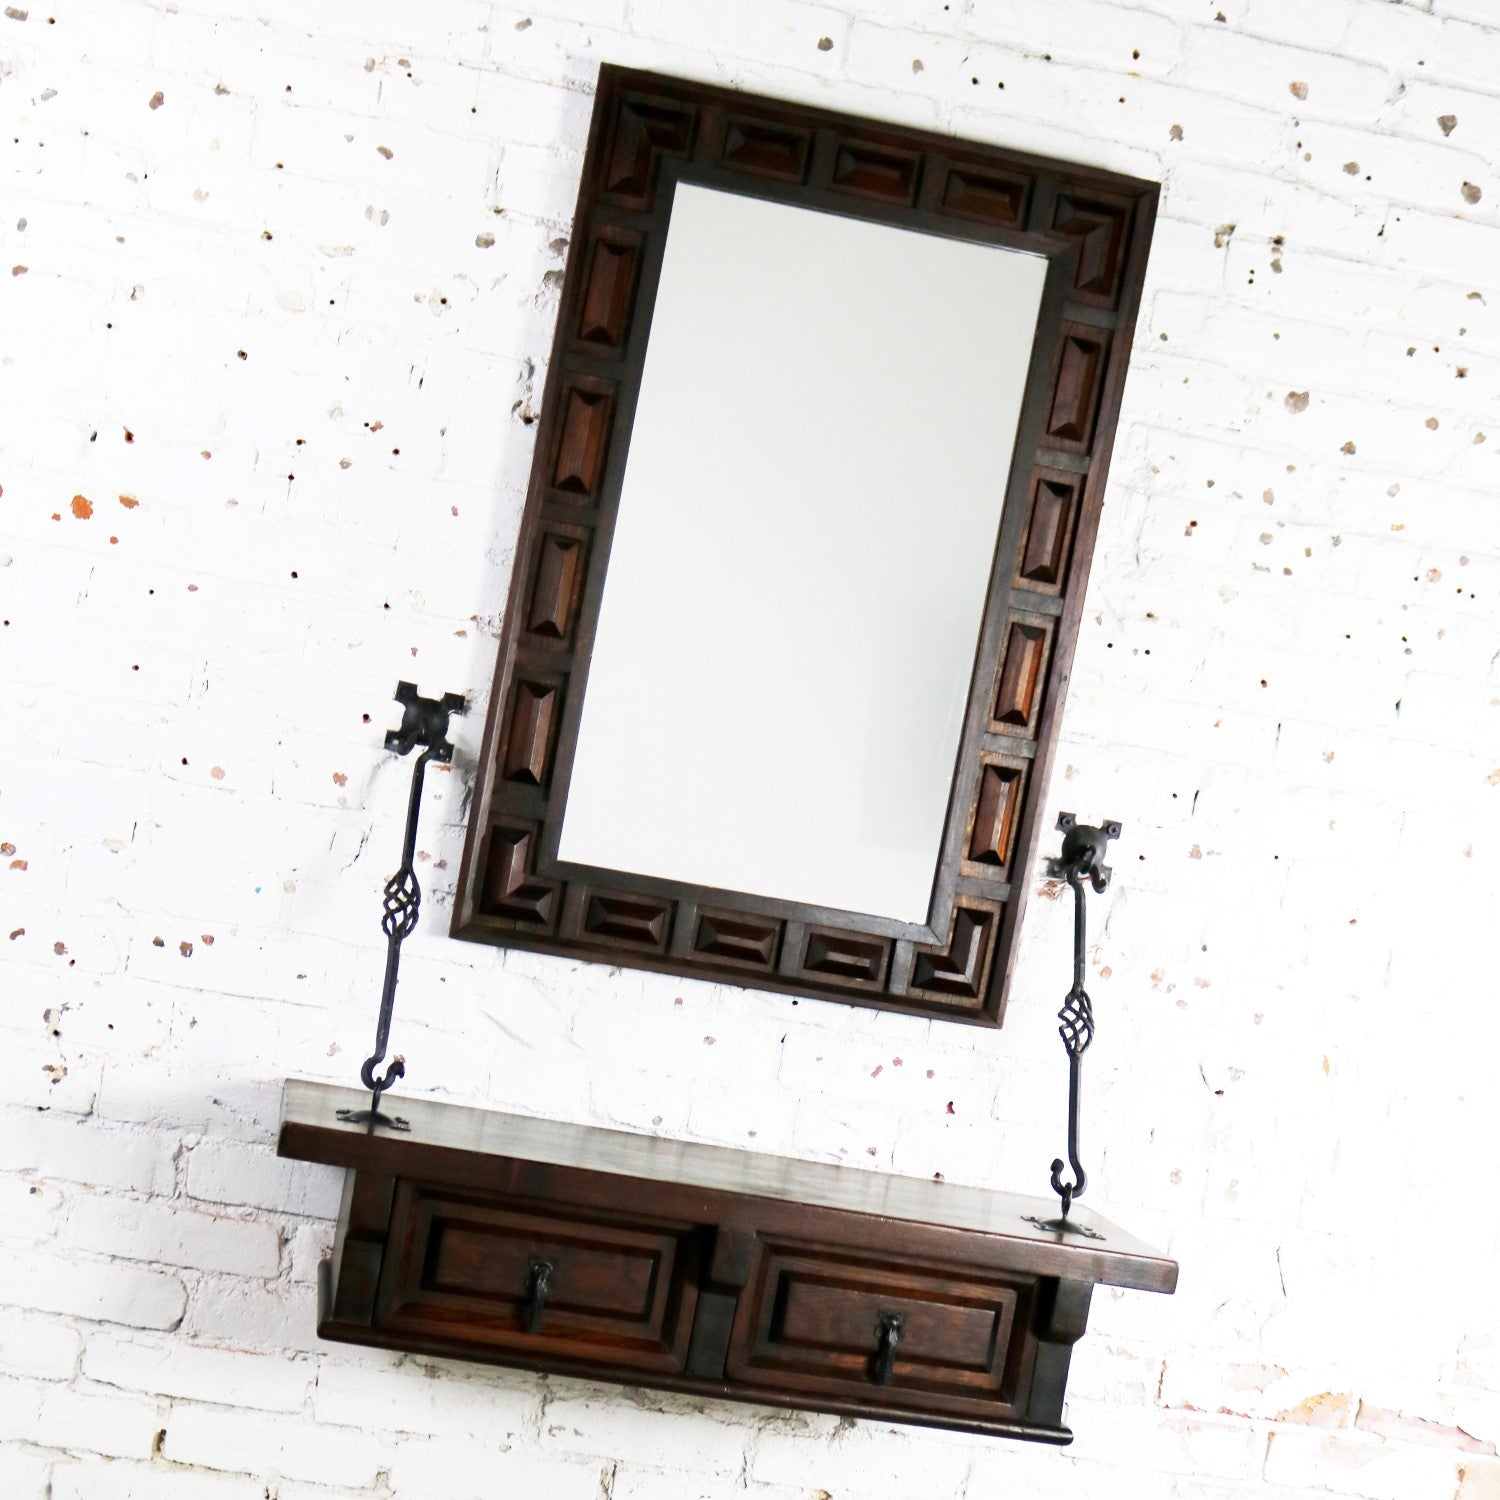 Mirror Inc Topeka Ks Spanish Revival Style Wall Hanging Console Table Mirror After Artes De Mexico